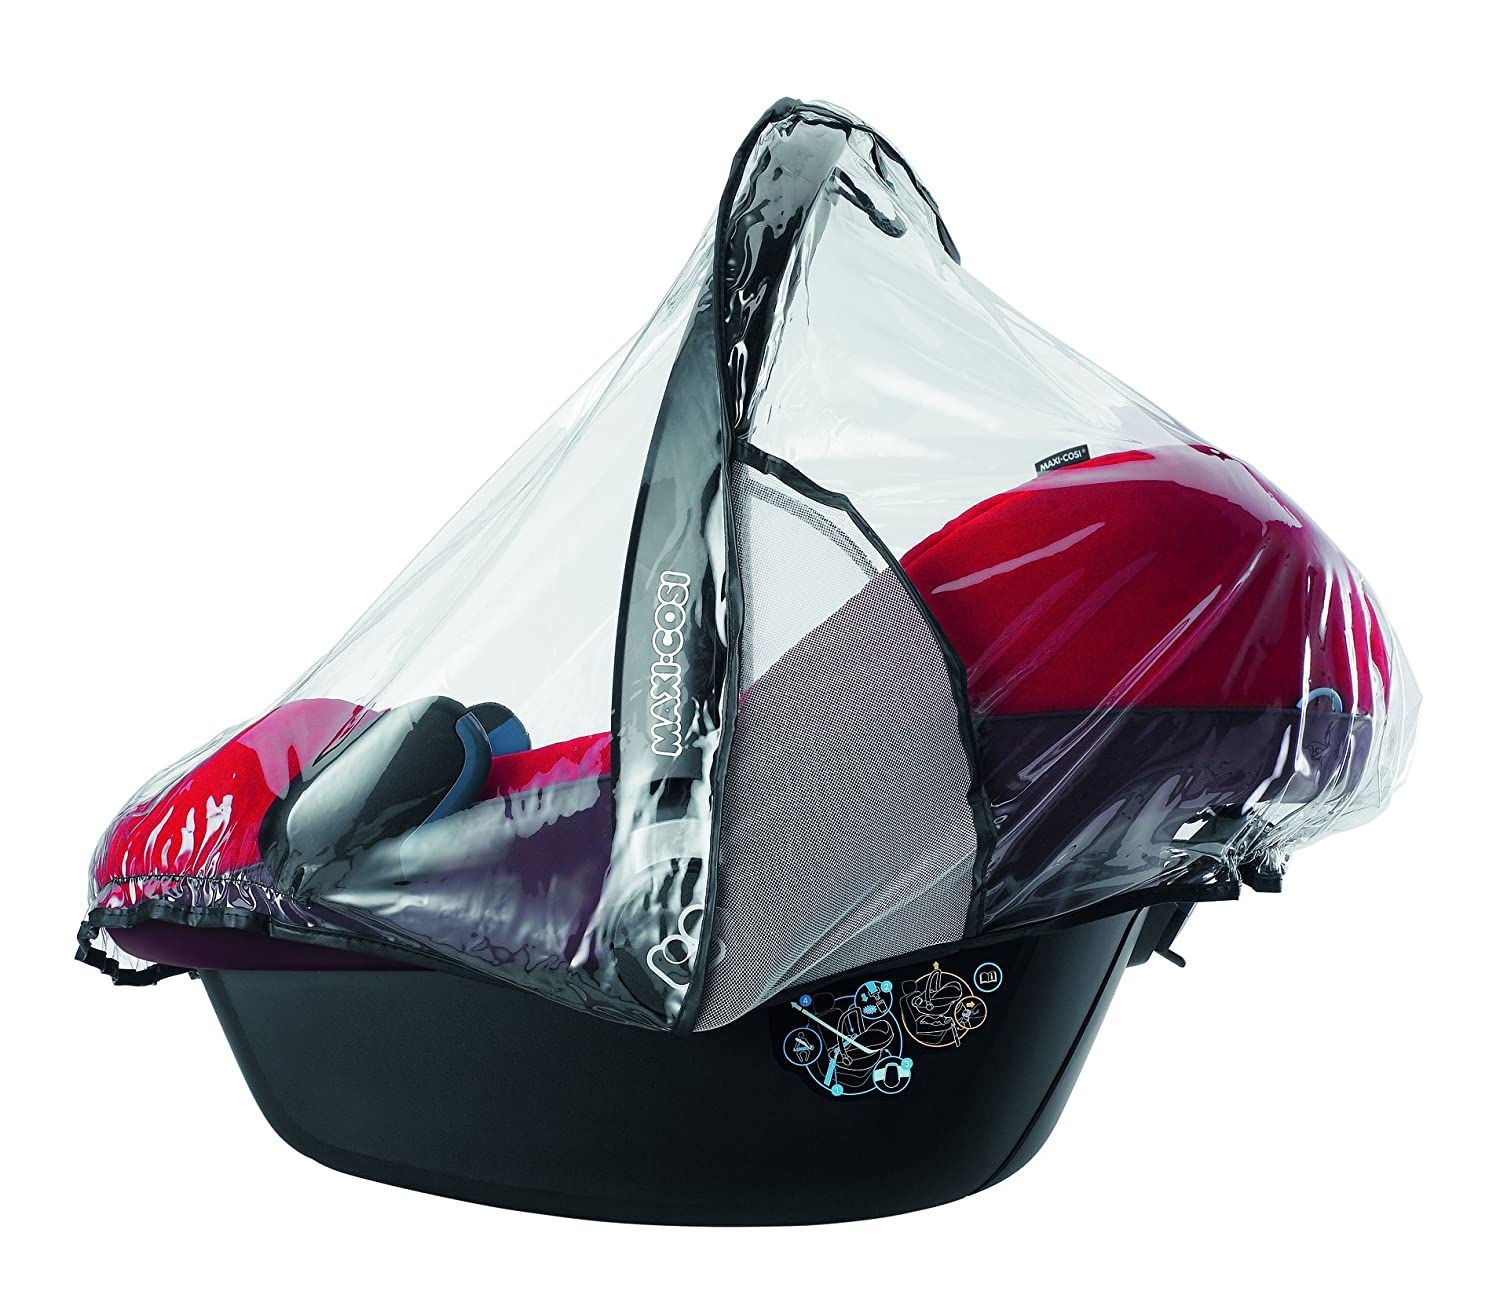 Maxi-Cosi Pebble Plus/Pebble/Cabriofix Raincover